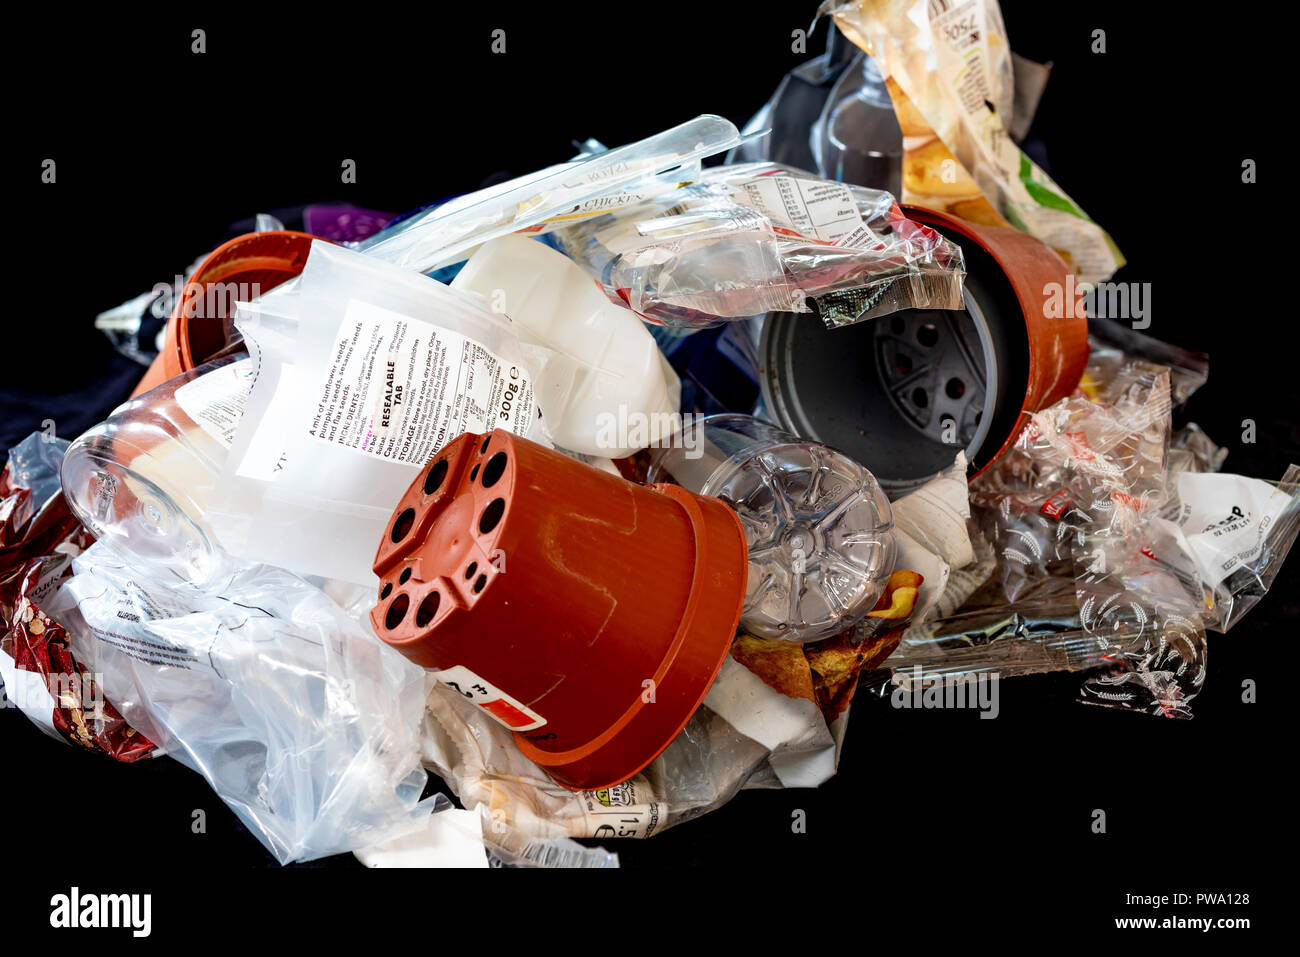 Pile of different plastics, some are recyclable some not. - Stock Image